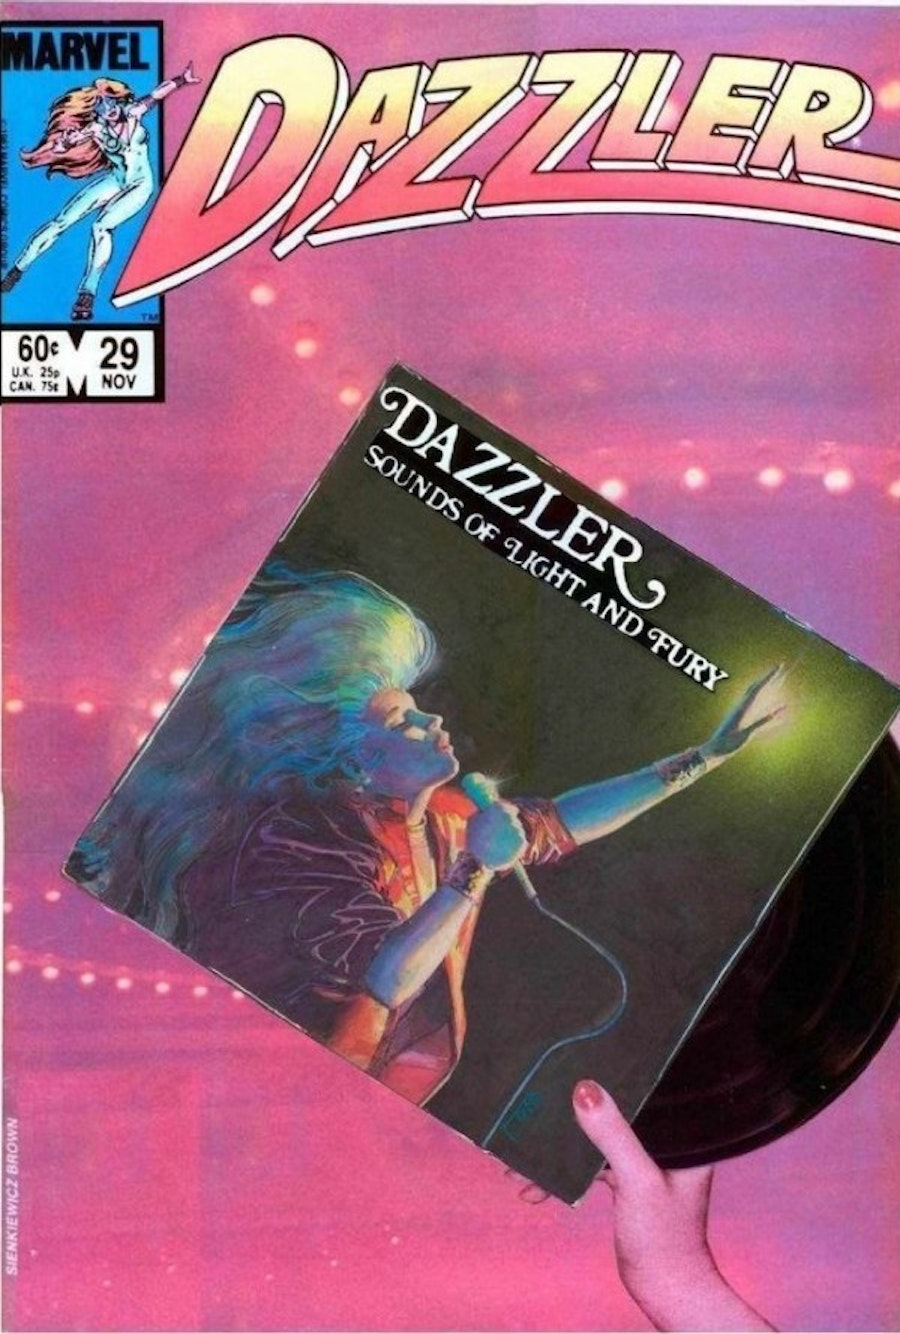 Dazzler Cover by Bill Sienkiewicz